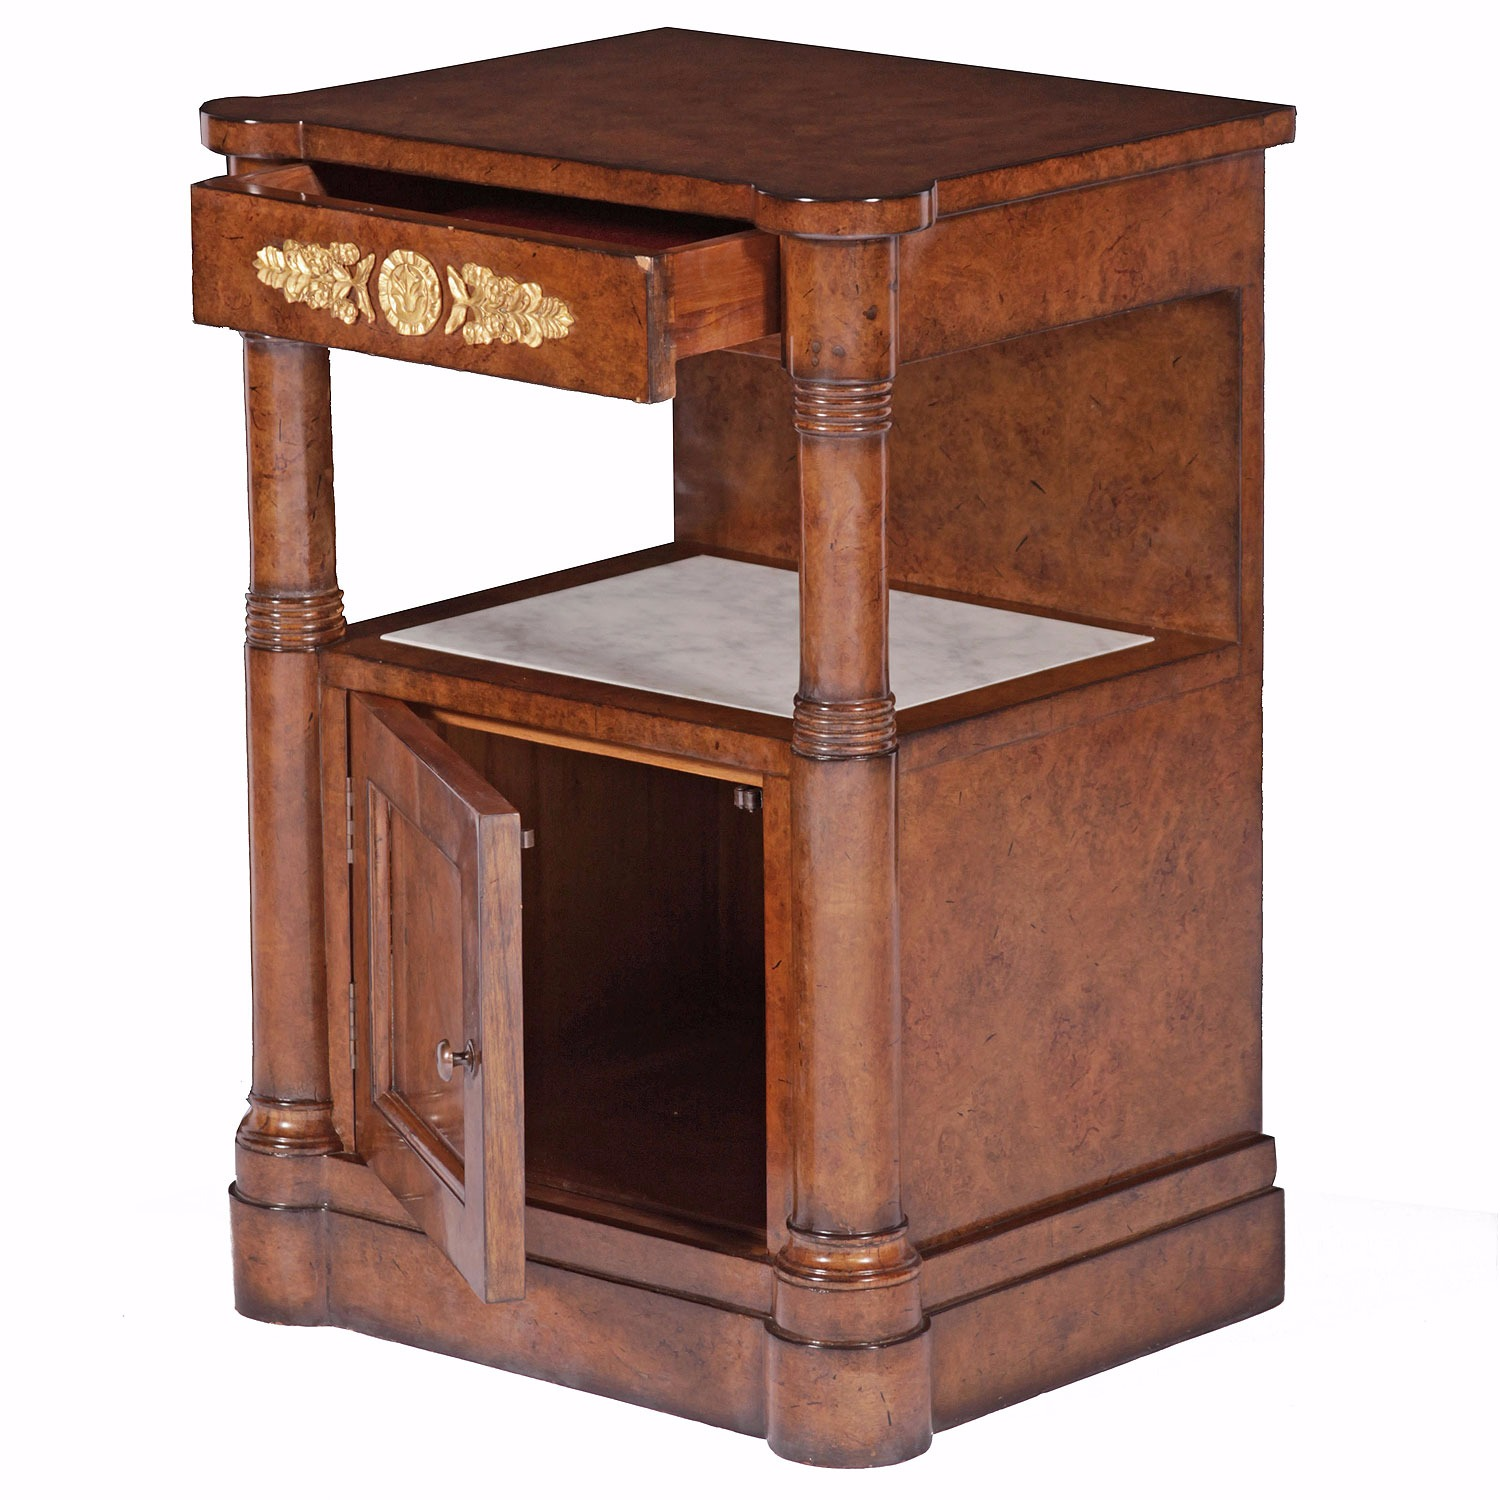 Burr oak bedside - Left hand